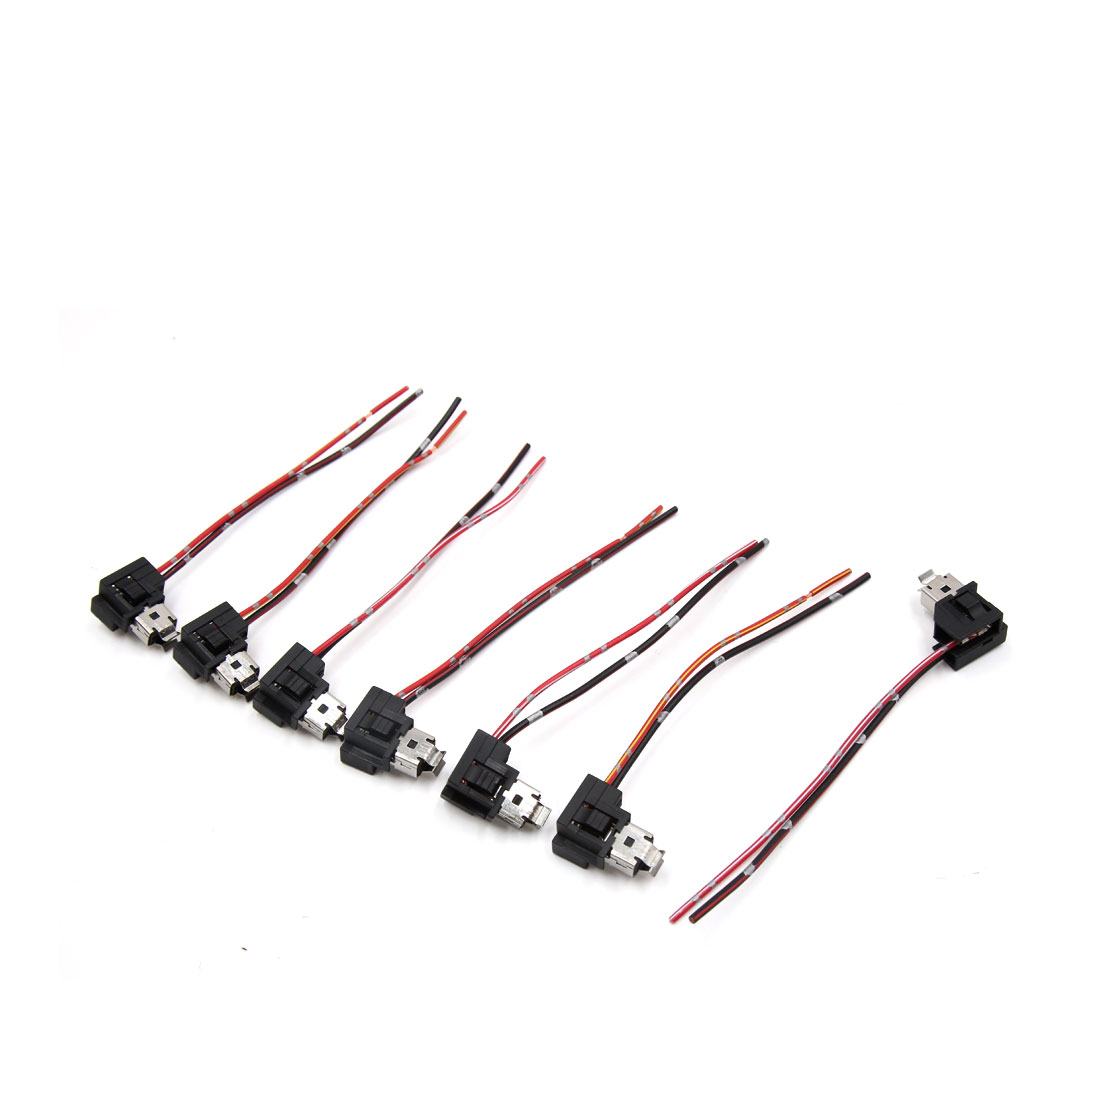 7pcs h1 dc 12v car bulb holder light socket headlight connector wire harness [ 1100 x 1100 Pixel ]